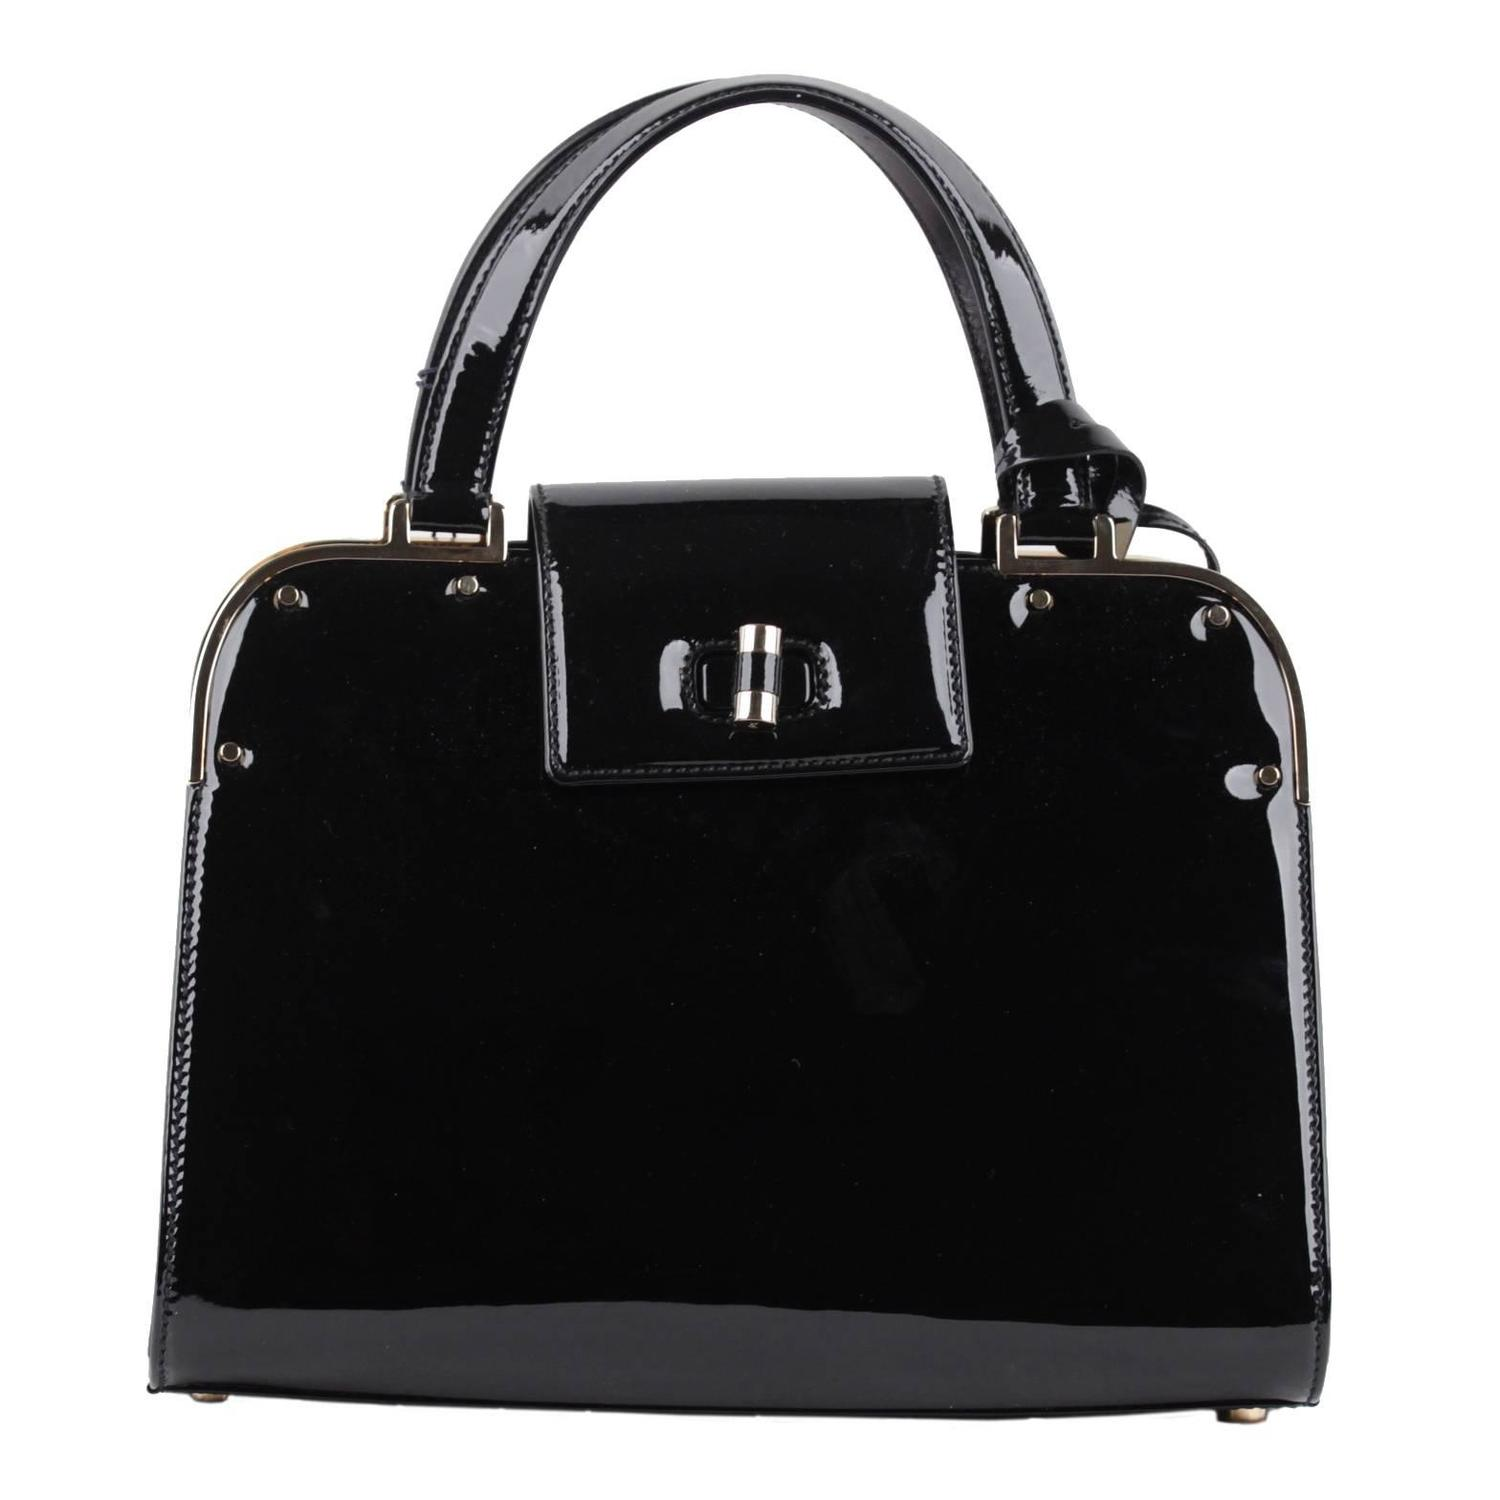 ysl purses replica - YVES SAINT LAURENT Black Patent Leather UPTOWN Bag HANDBAG Satchel ...